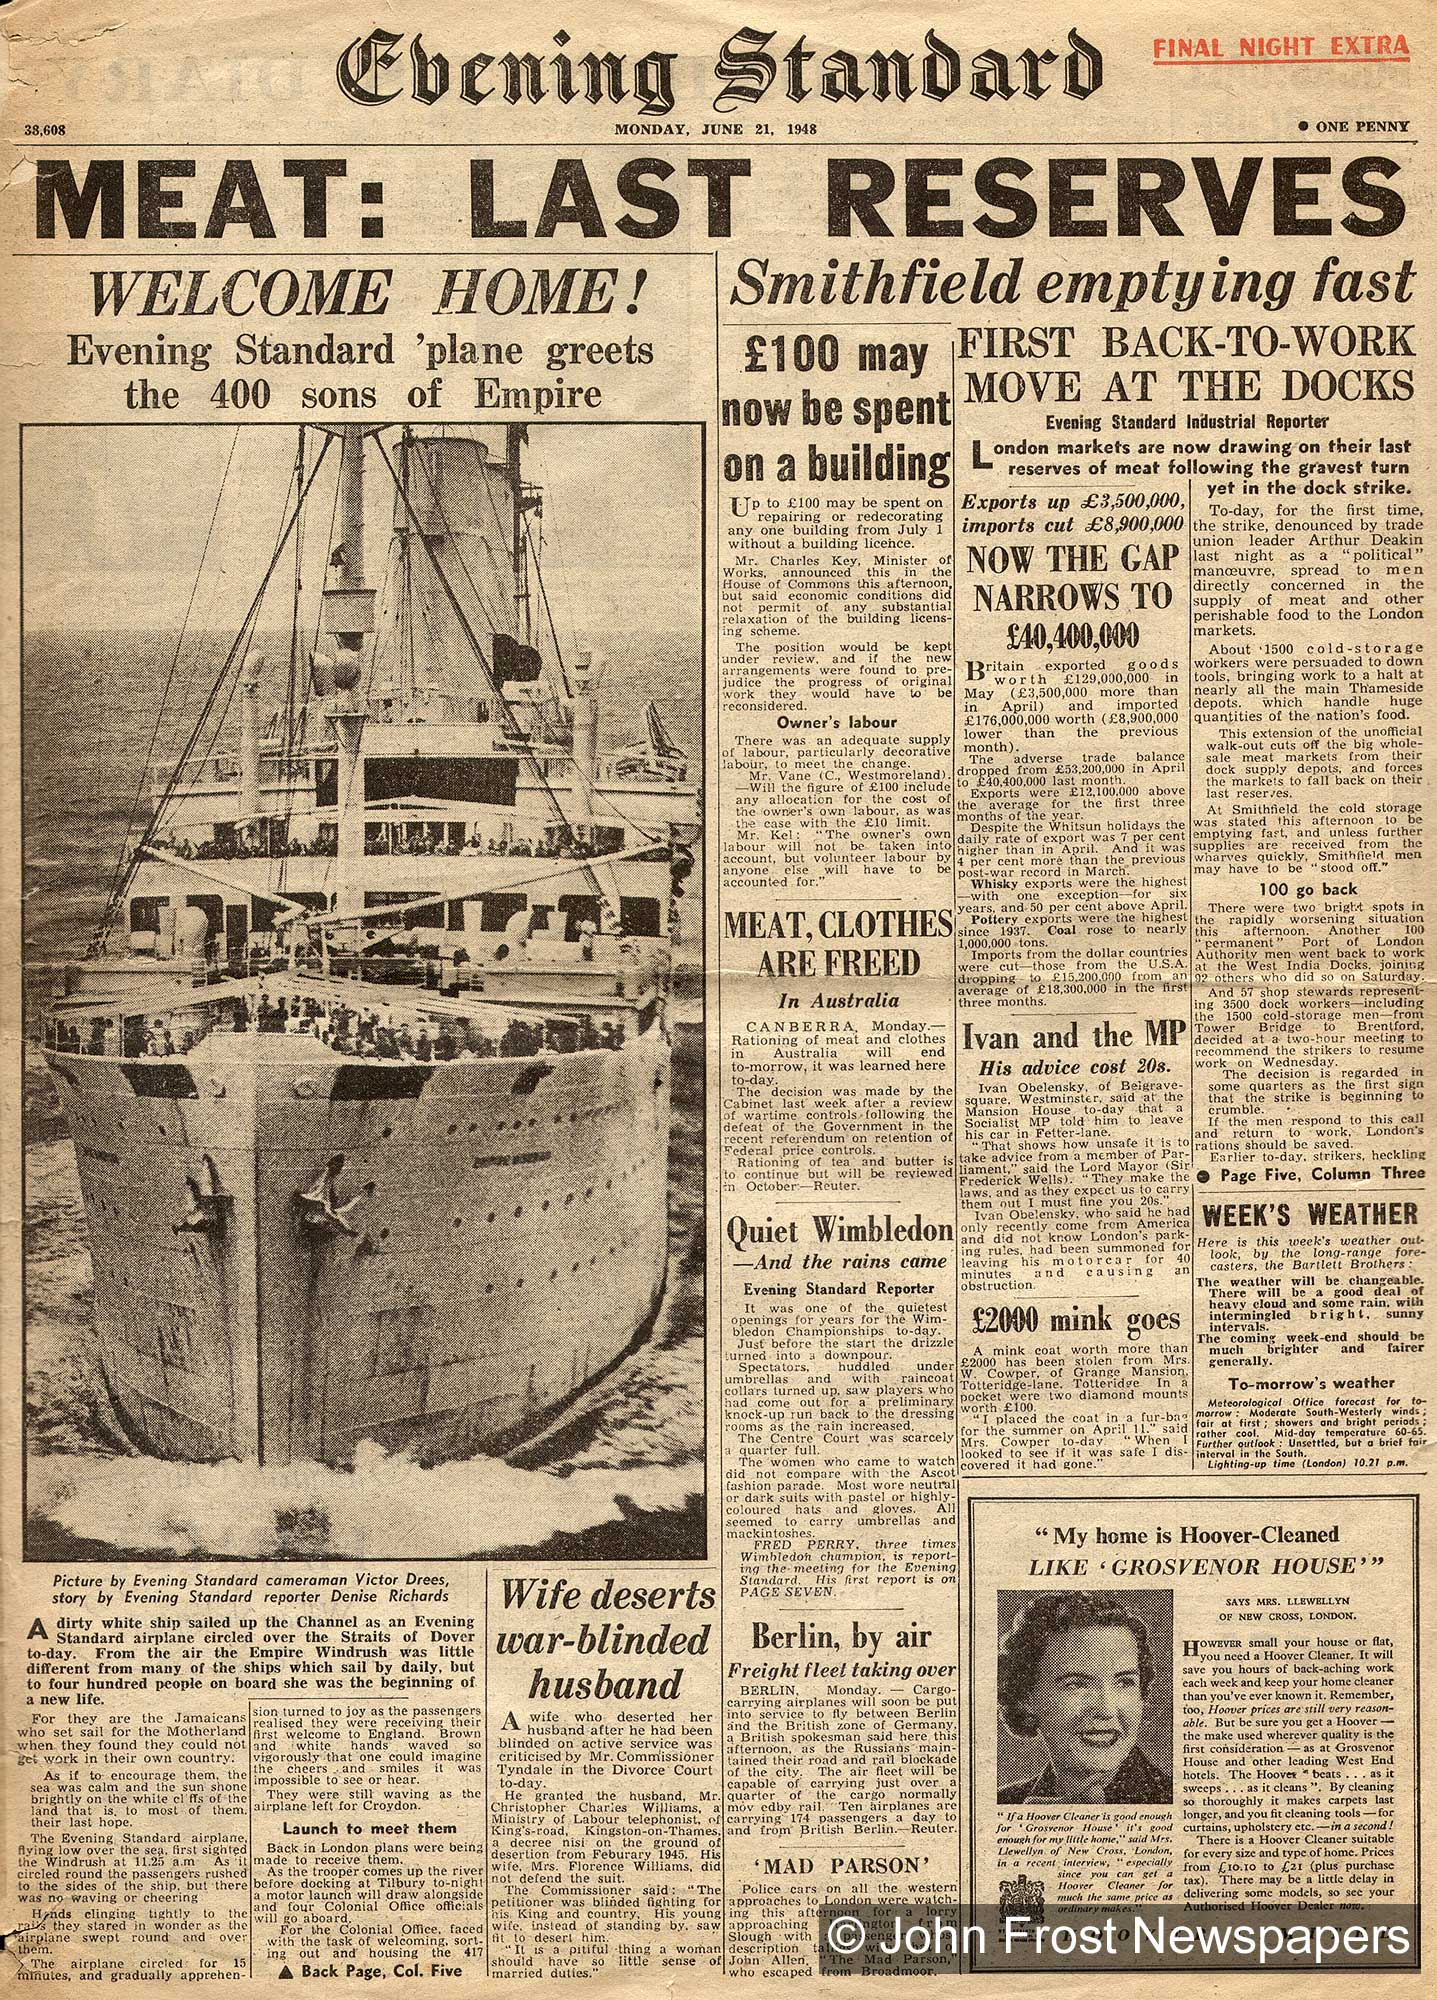 Windrush: post-war immigration